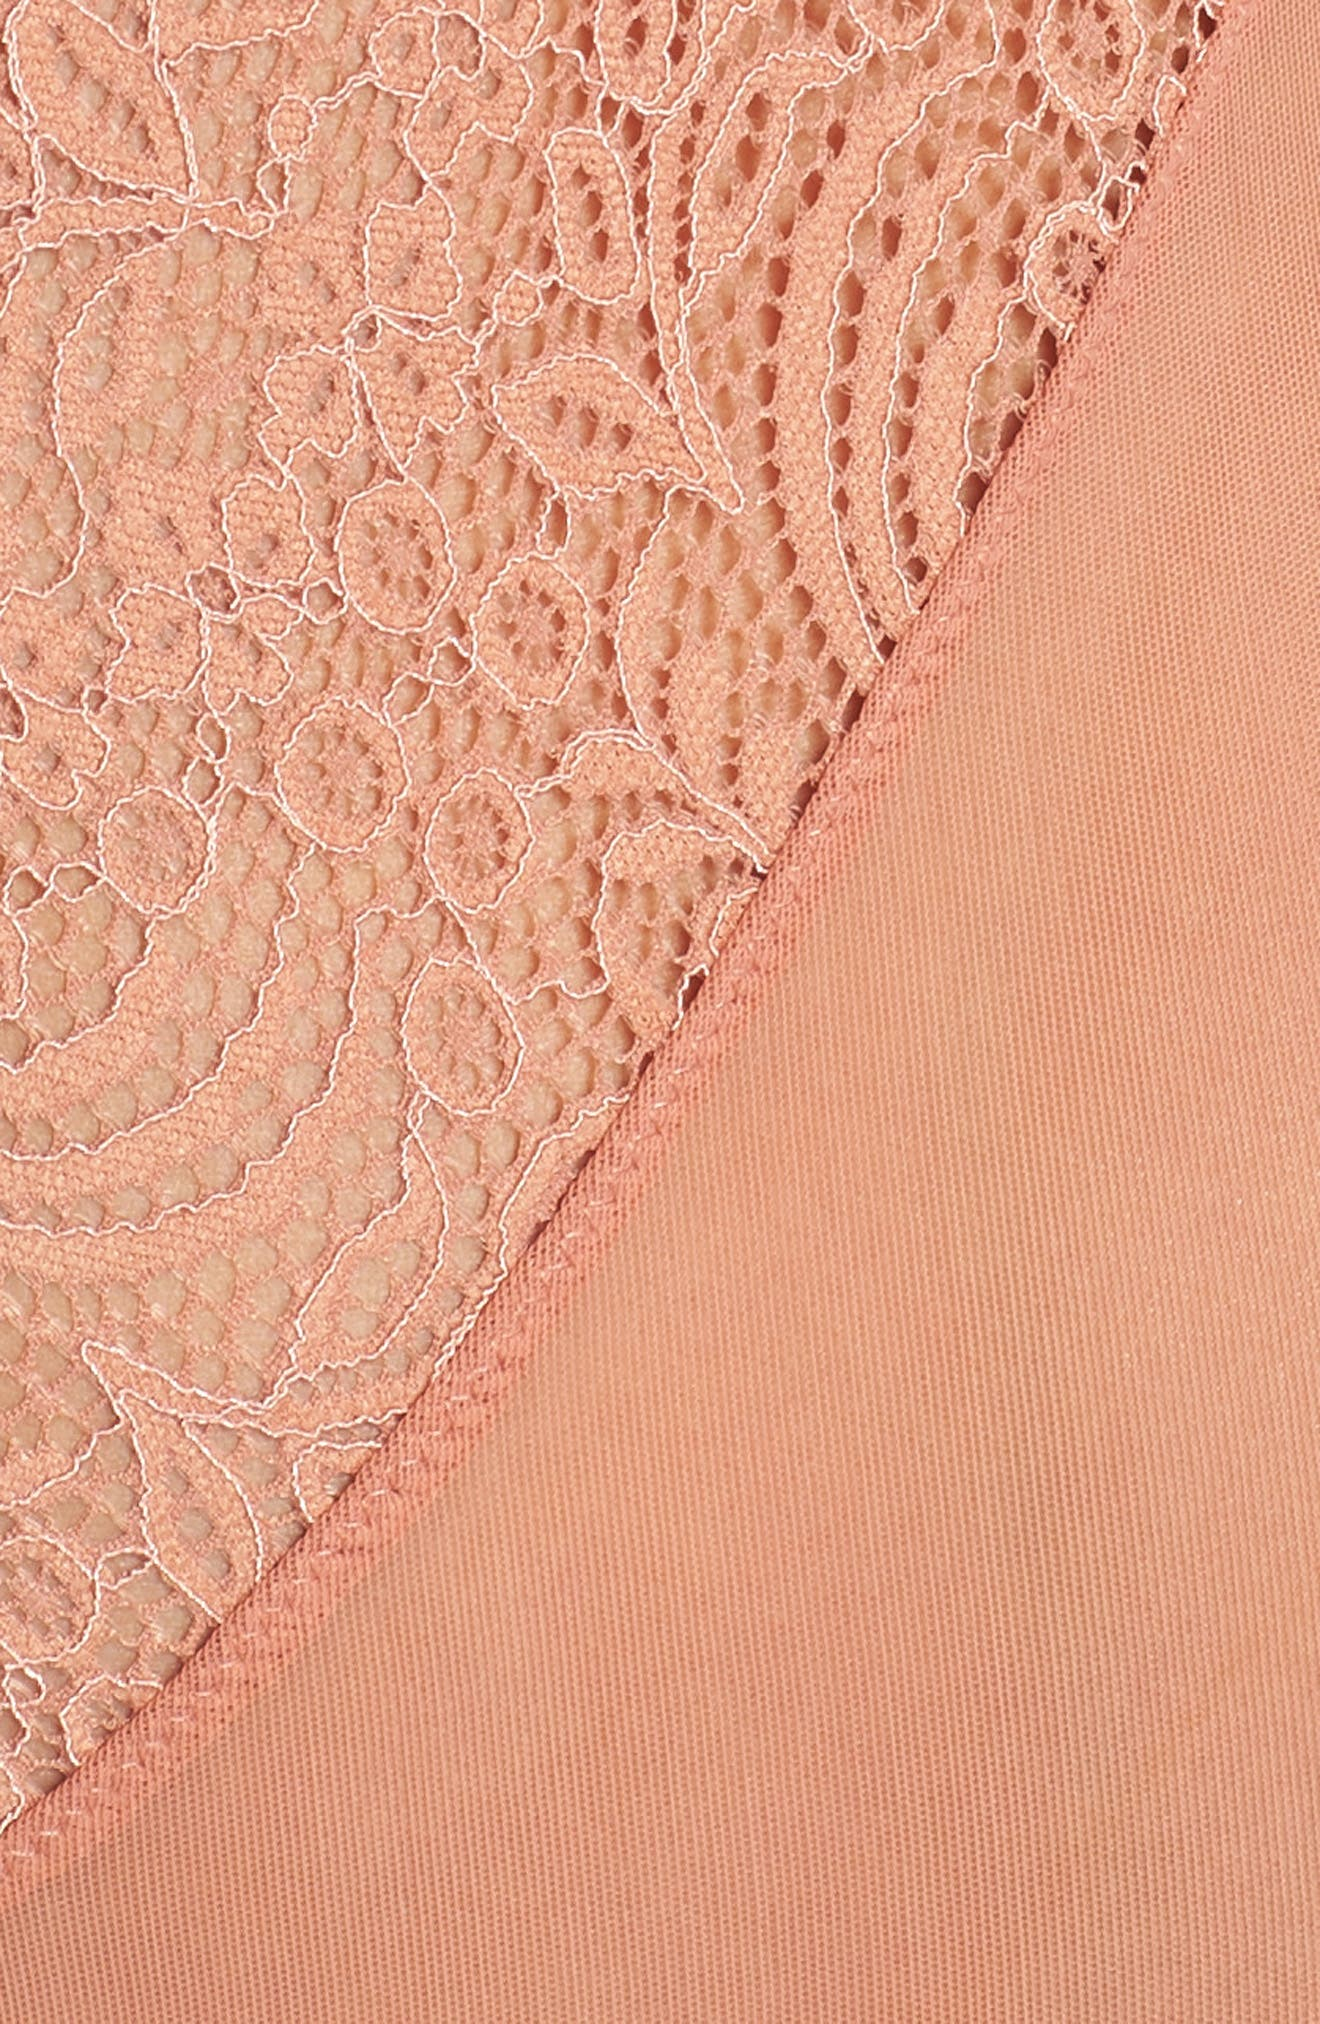 Thistle & Spire Marcy Soft Cup Bodysuit,                             Alternate thumbnail 5, color,                             Terracotta